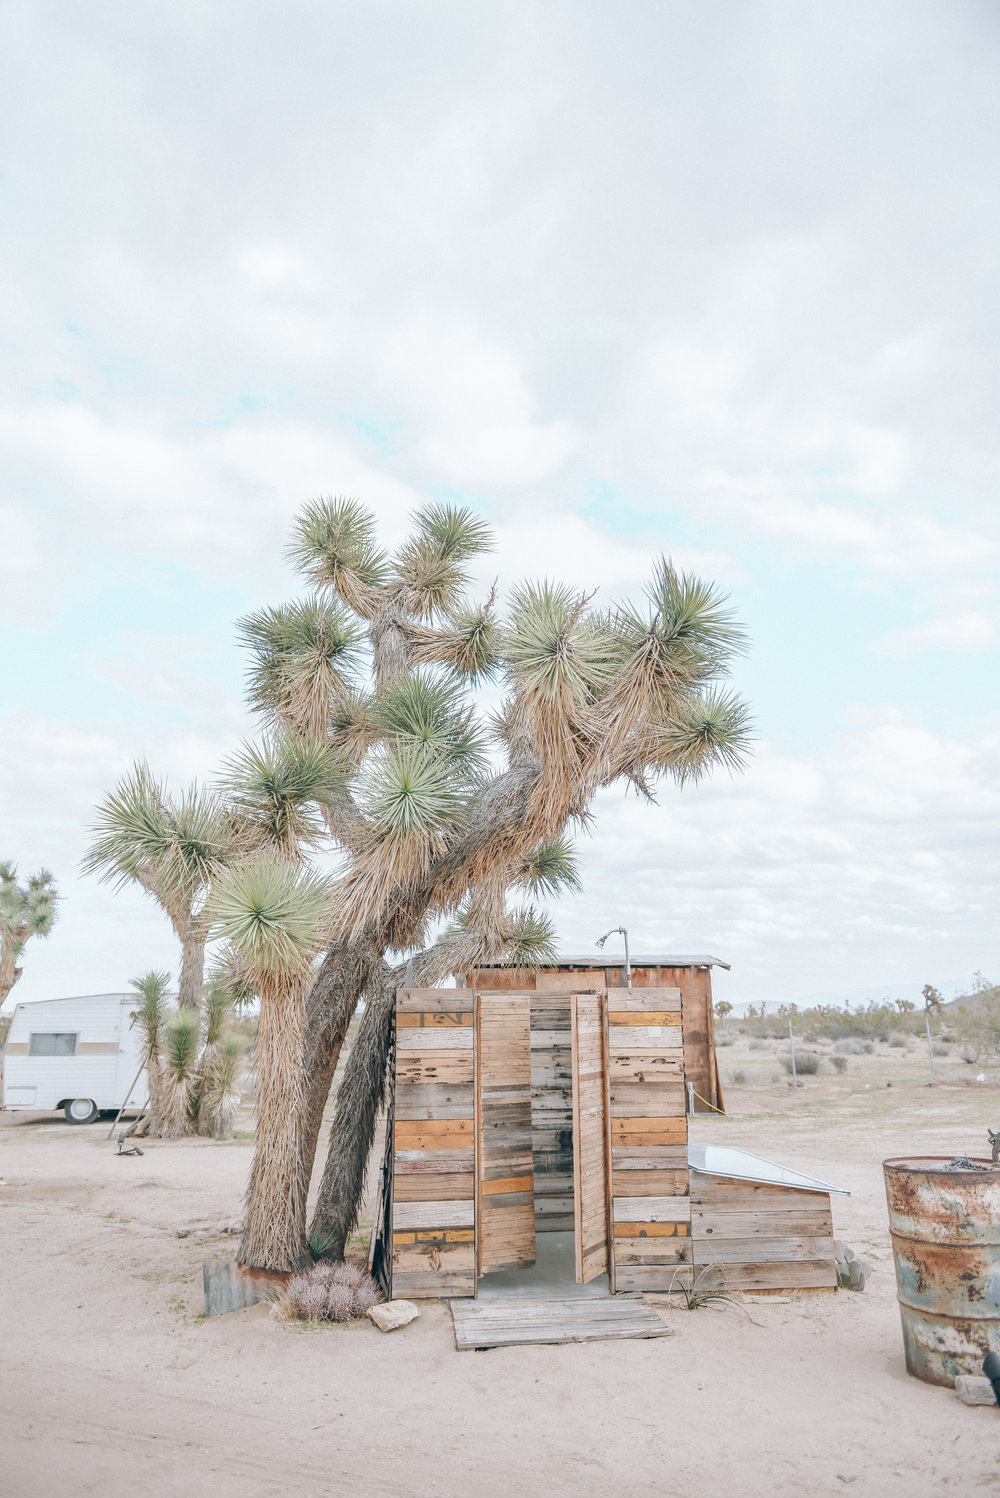 joshua-tree-acres-by-lisa-linh